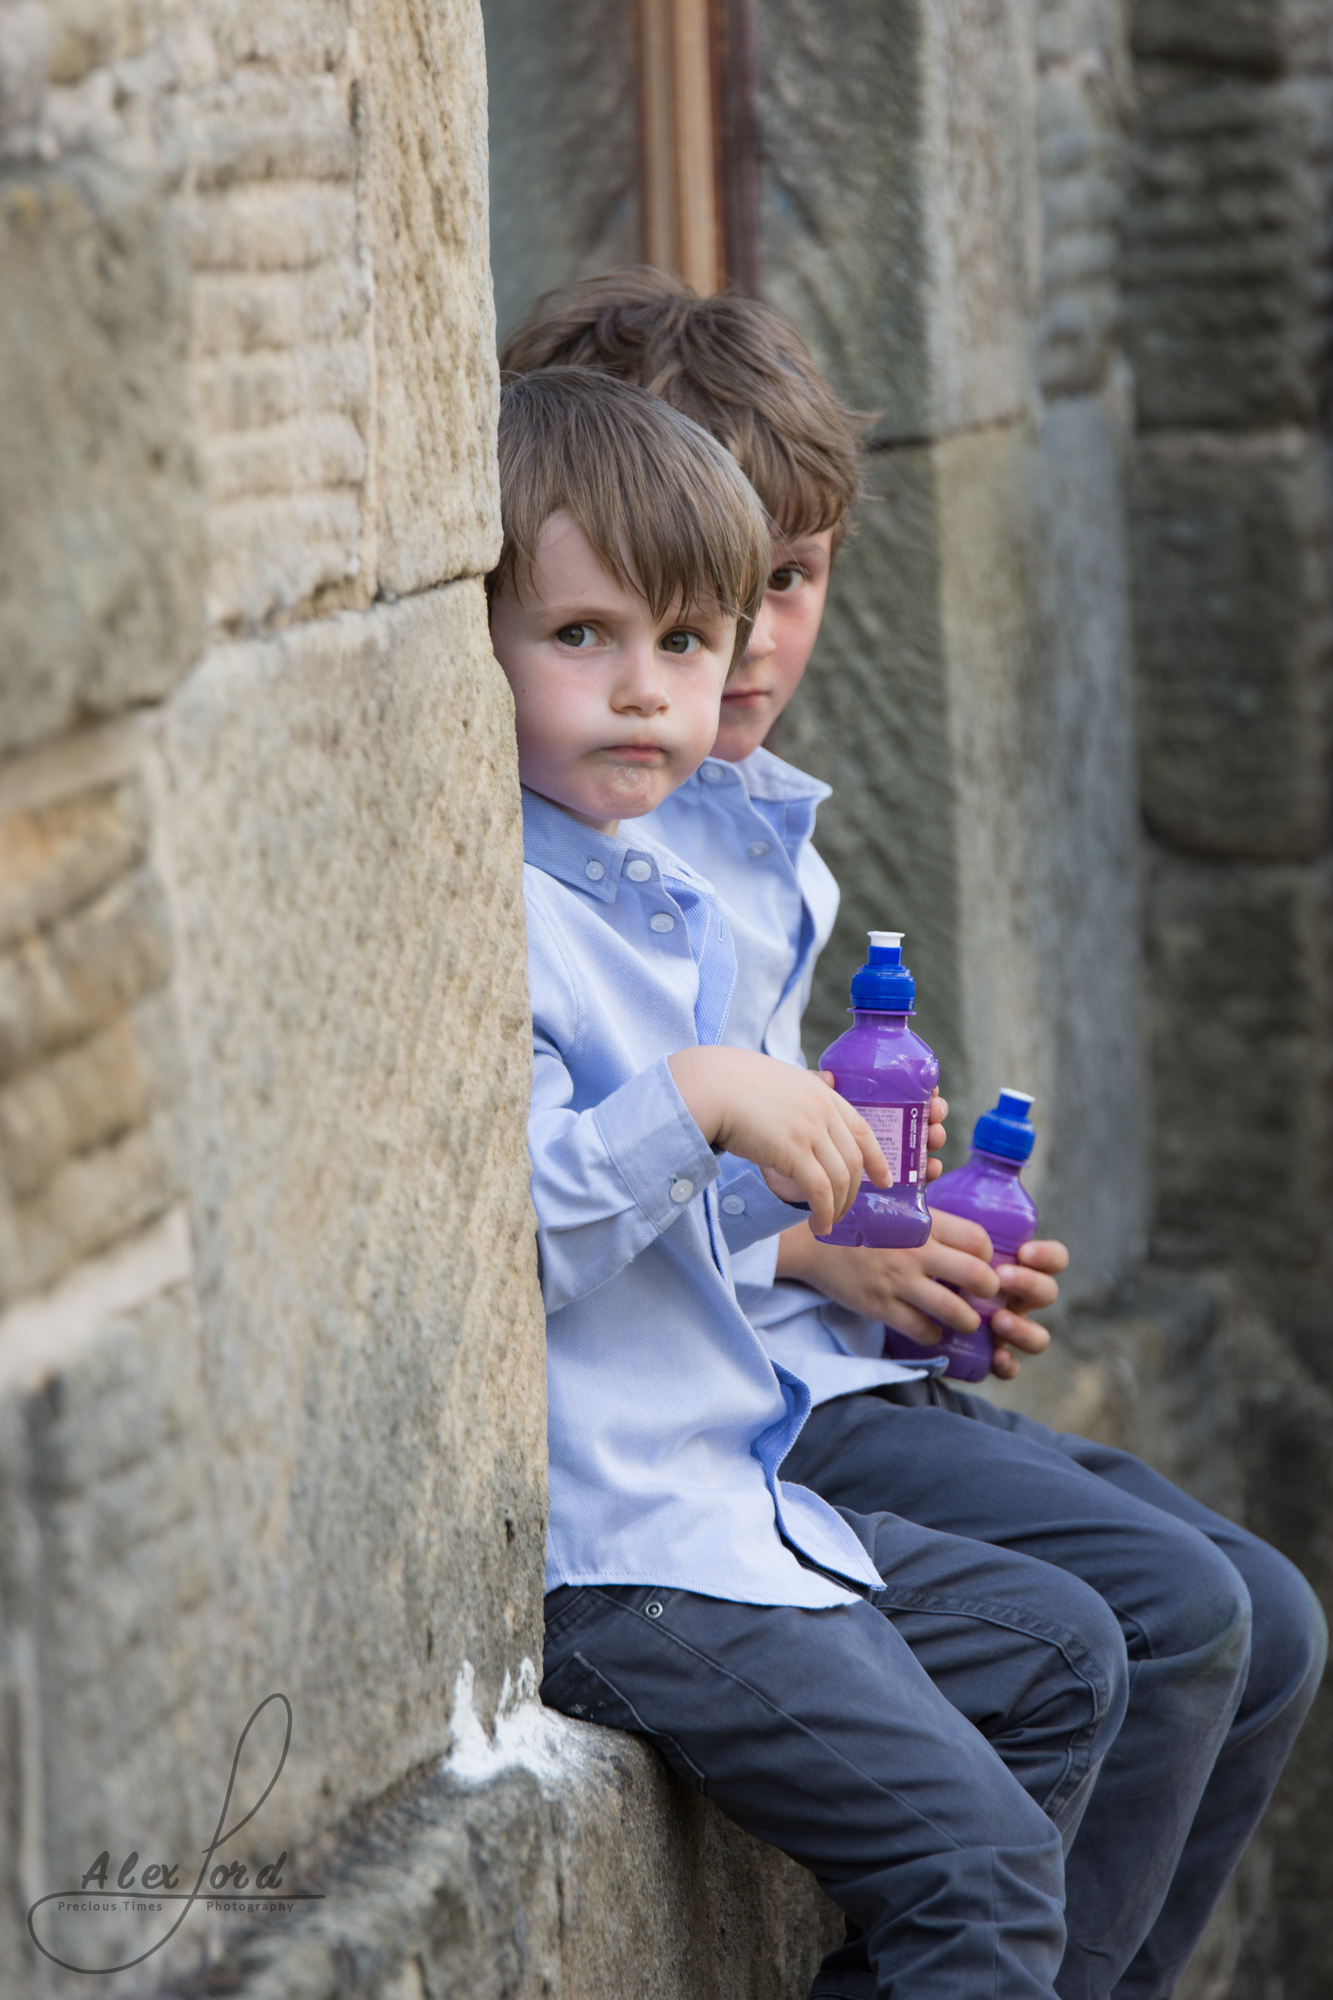 Two young boy wedding guests sit on a wall and have a fruit shot drink during the wedding reception welcome drinks